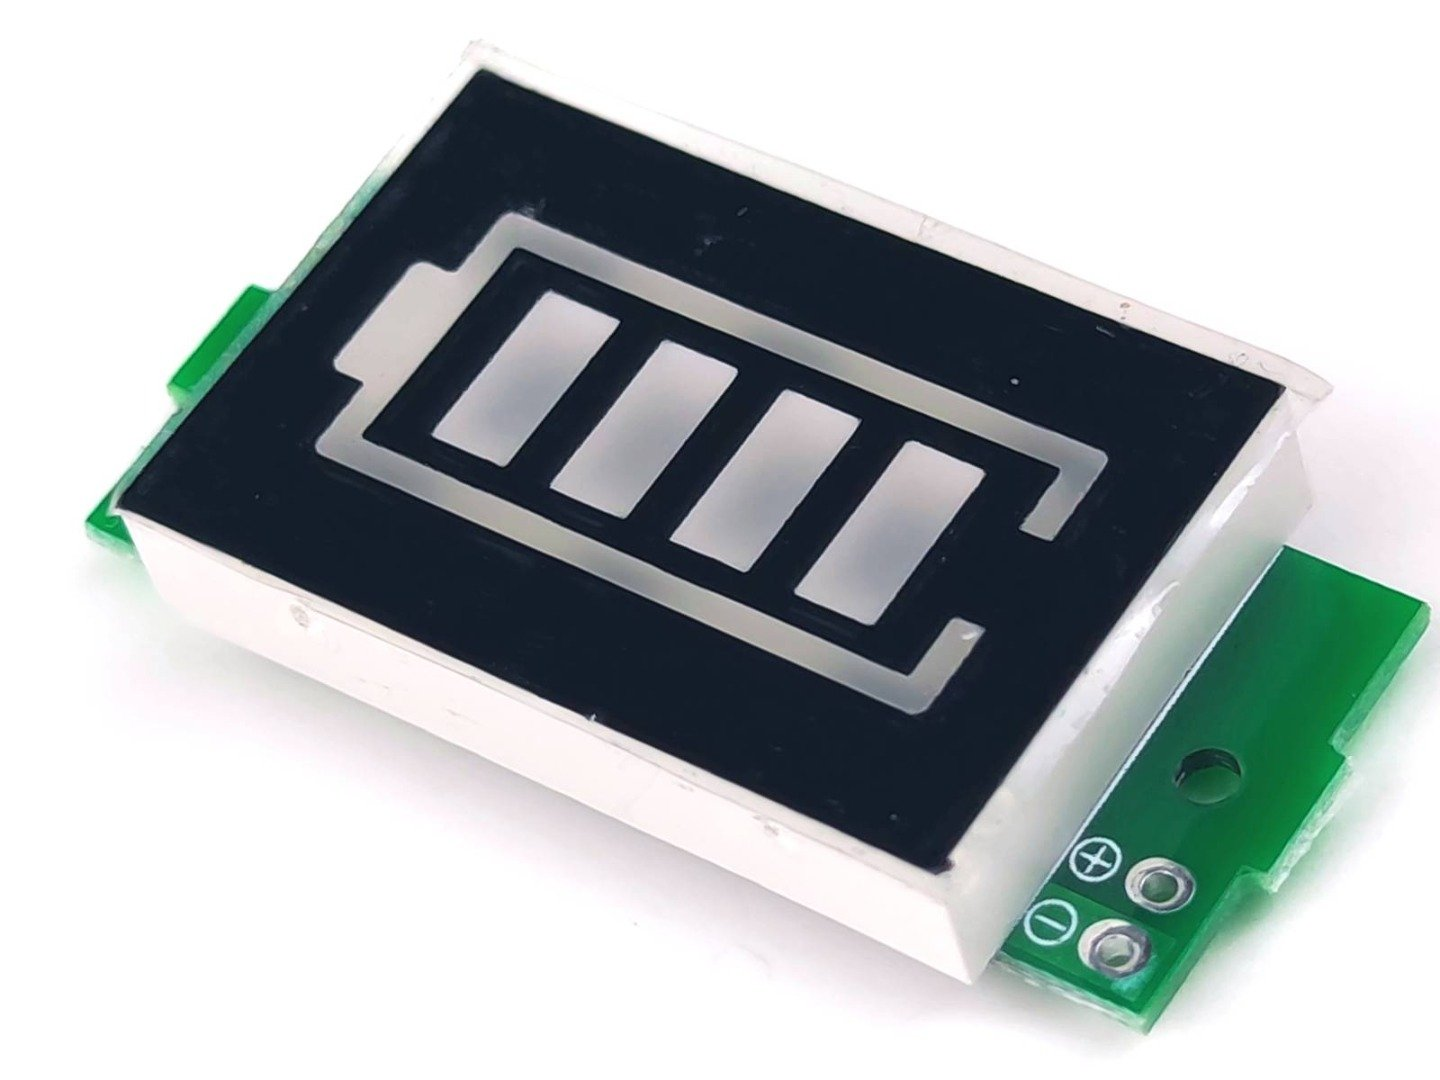 Lithium Battery Gauge LED for 1-8 cells in series – BLUE LED display